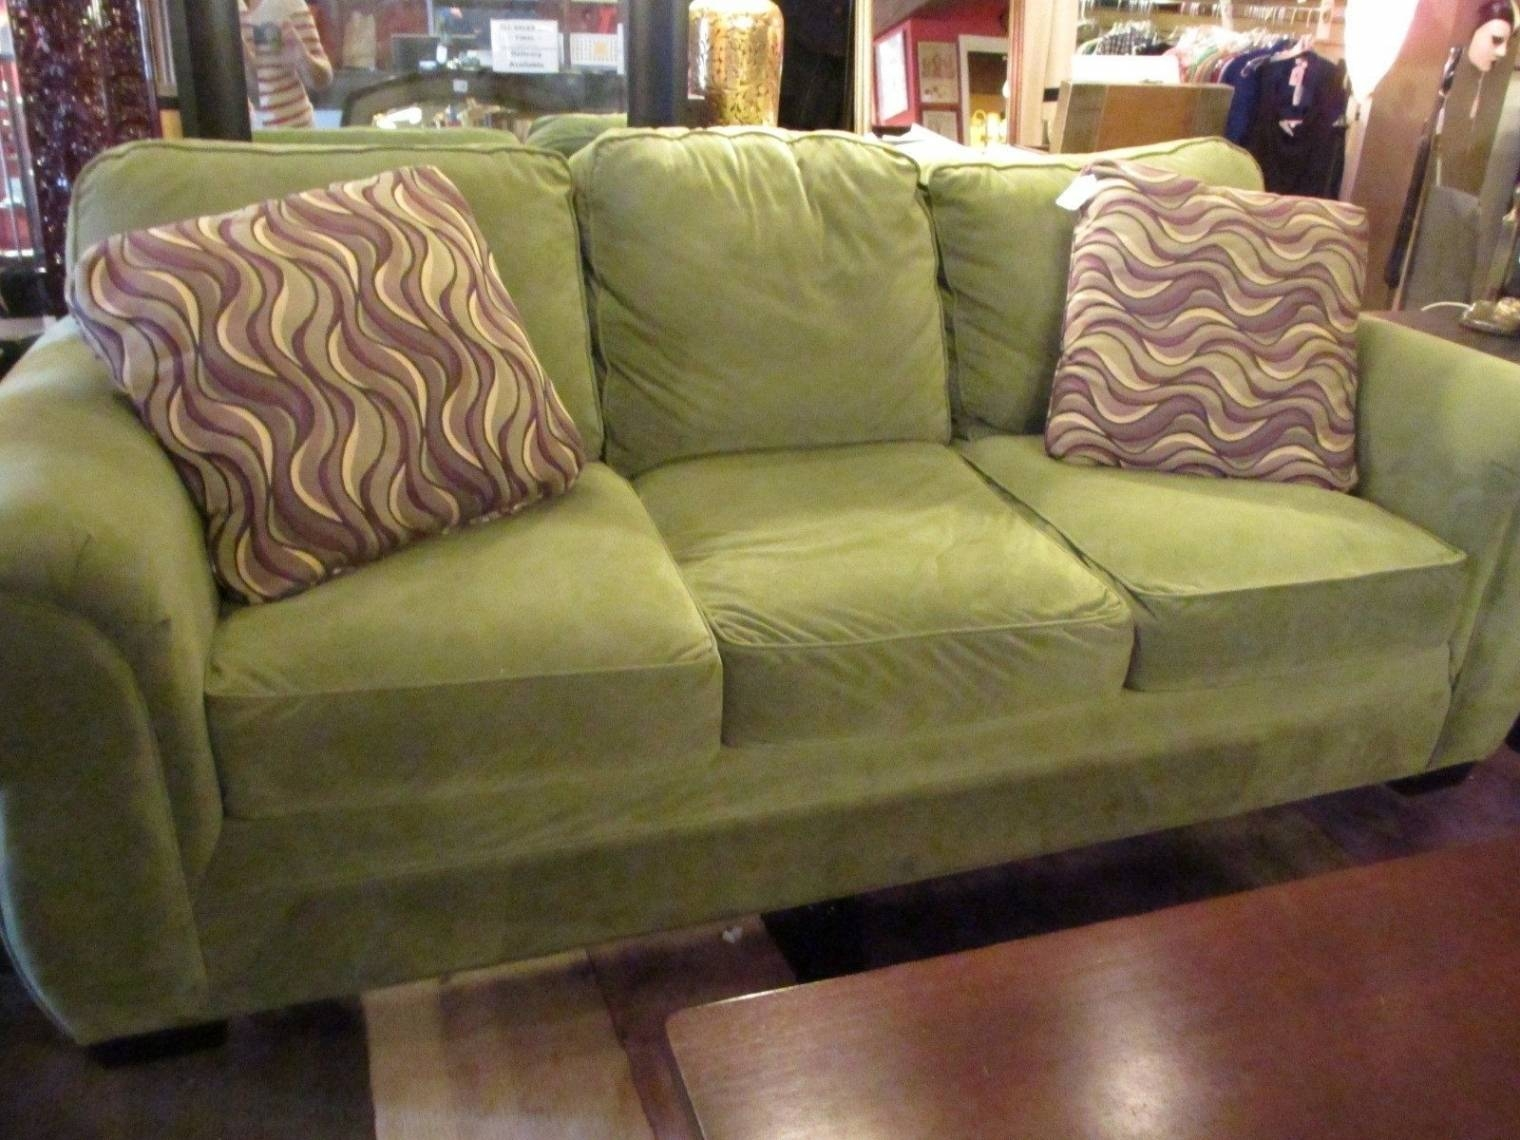 Best Of Green Sectional Sofa | Sofa Ideas inside Green Sectional Sofa (Image 9 of 30)